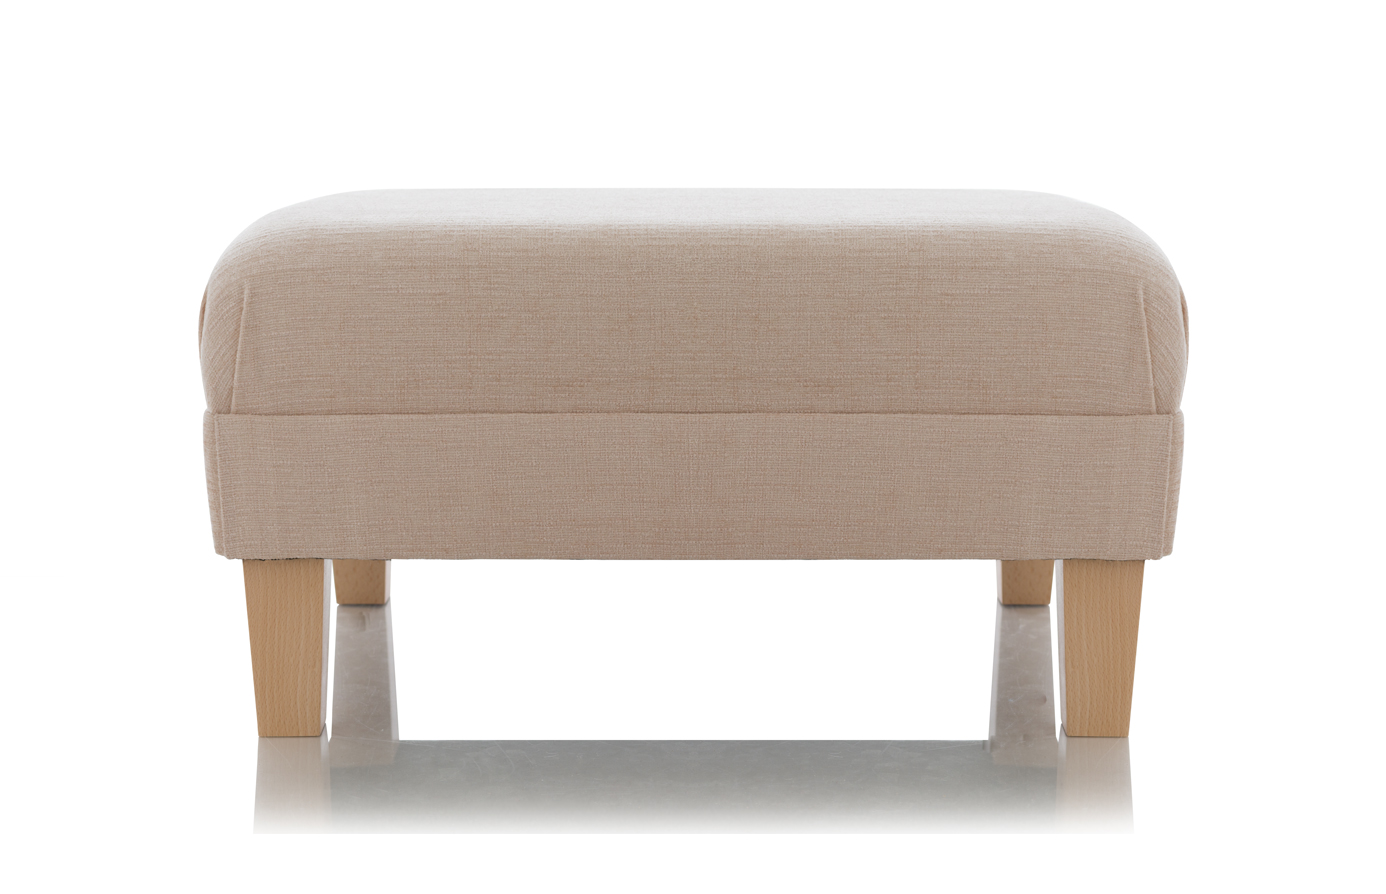 Klein Voetenbankje New Footstool Ottoman Foot Rest Small Large Pouffe